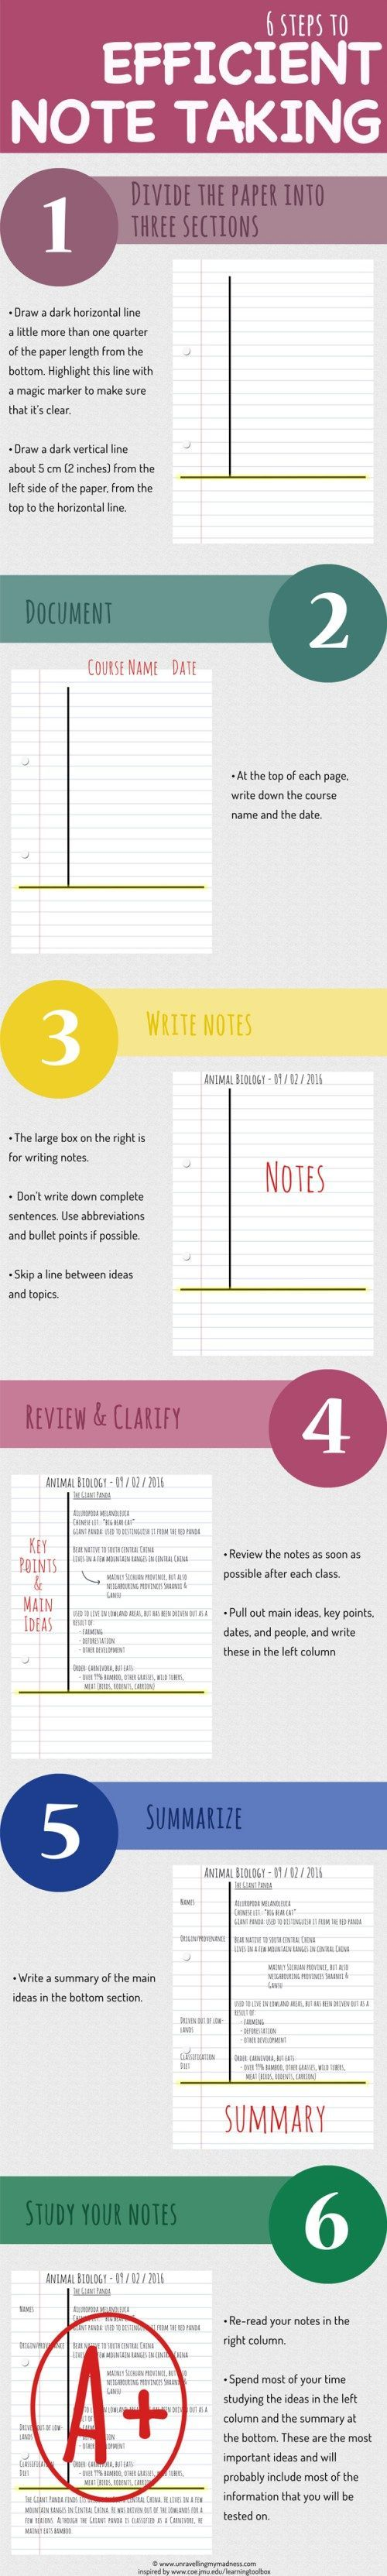 6 steps to efficient note taking. The ultimate guide to getting the most out of your note for your finals.: